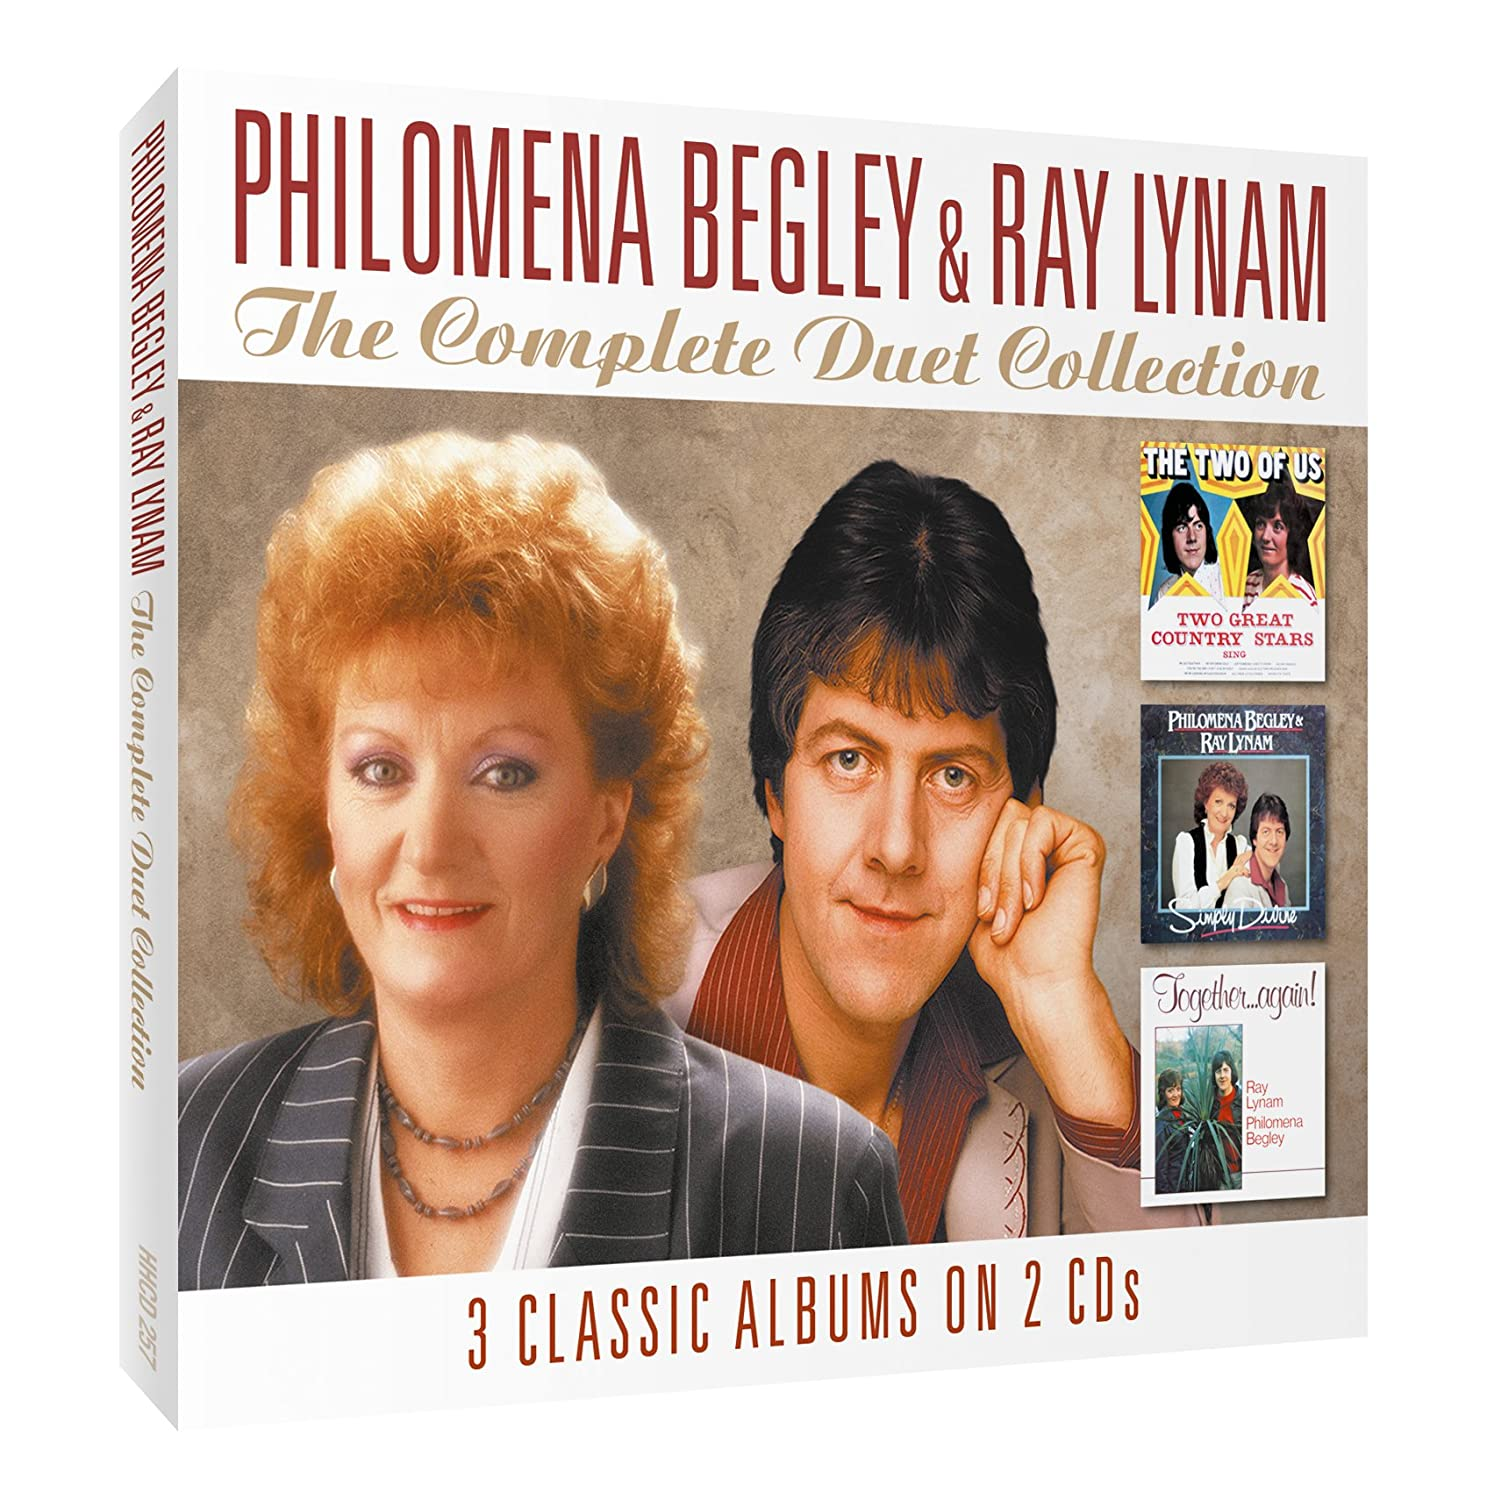 The Complete Duet Collection by Philomena Begley & Ray Lynam: Amazon.co.uk:  Music